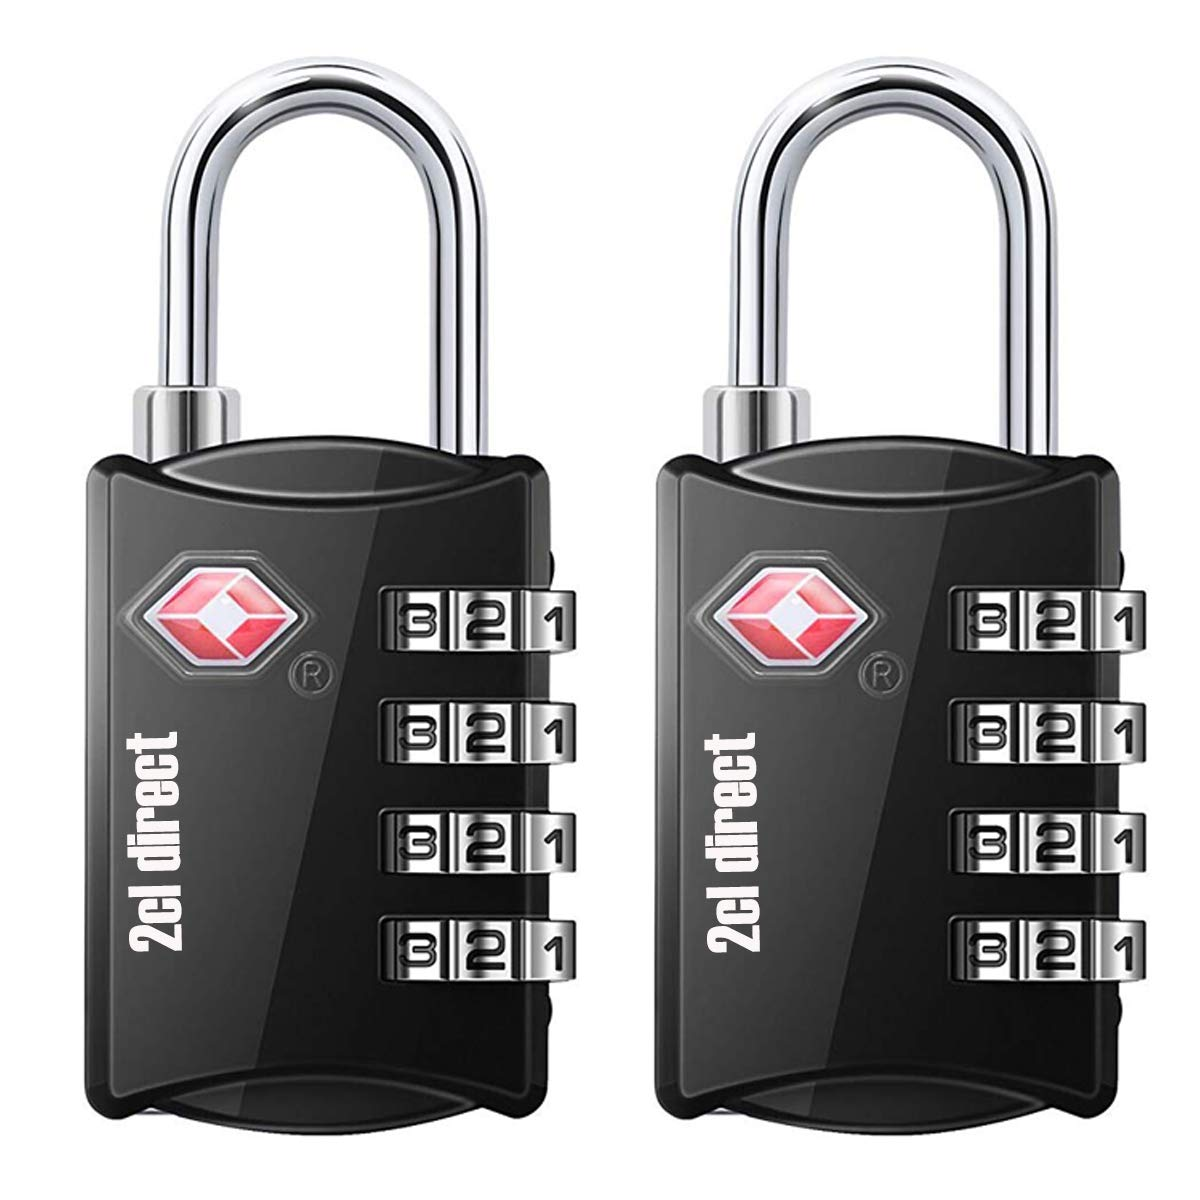 TSA Combination Lock Luggage Lock (2 Pack) - 4 Digit Steel Combination Padlock Set - Approved Travel Lock for Suitcases & Baggage, Black